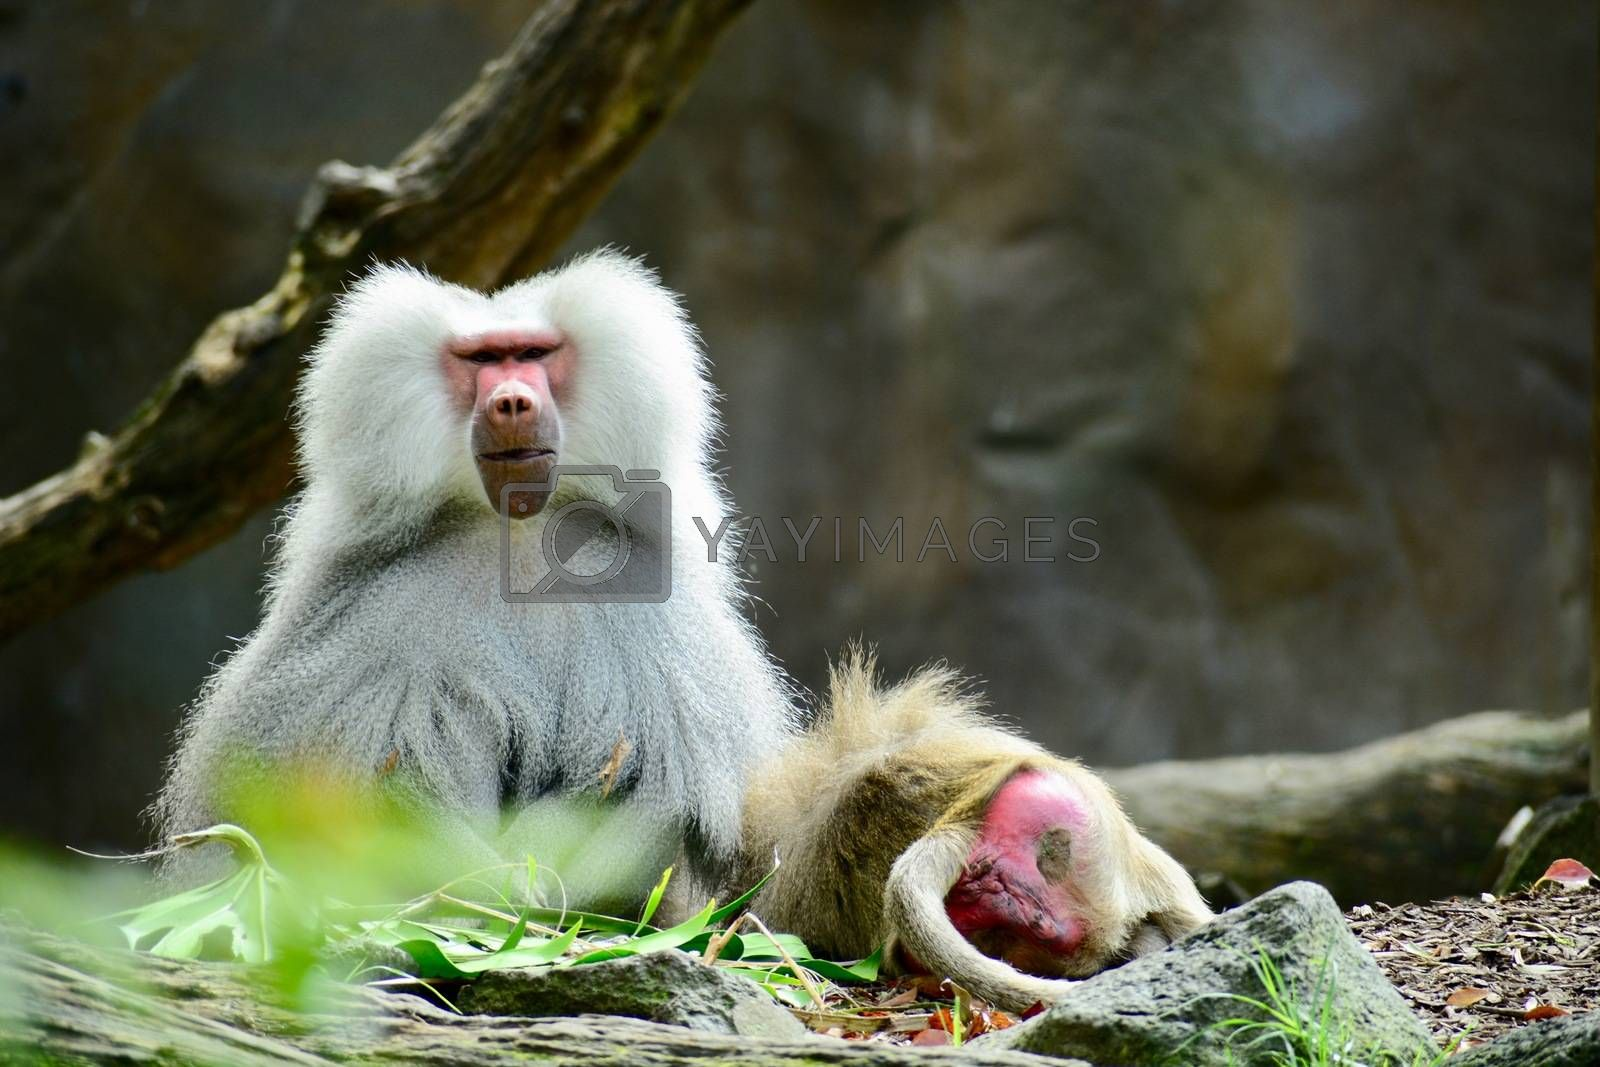 Hamadryas Baboon displays complex social behaviors, and can live in troops of several hundred individuals.